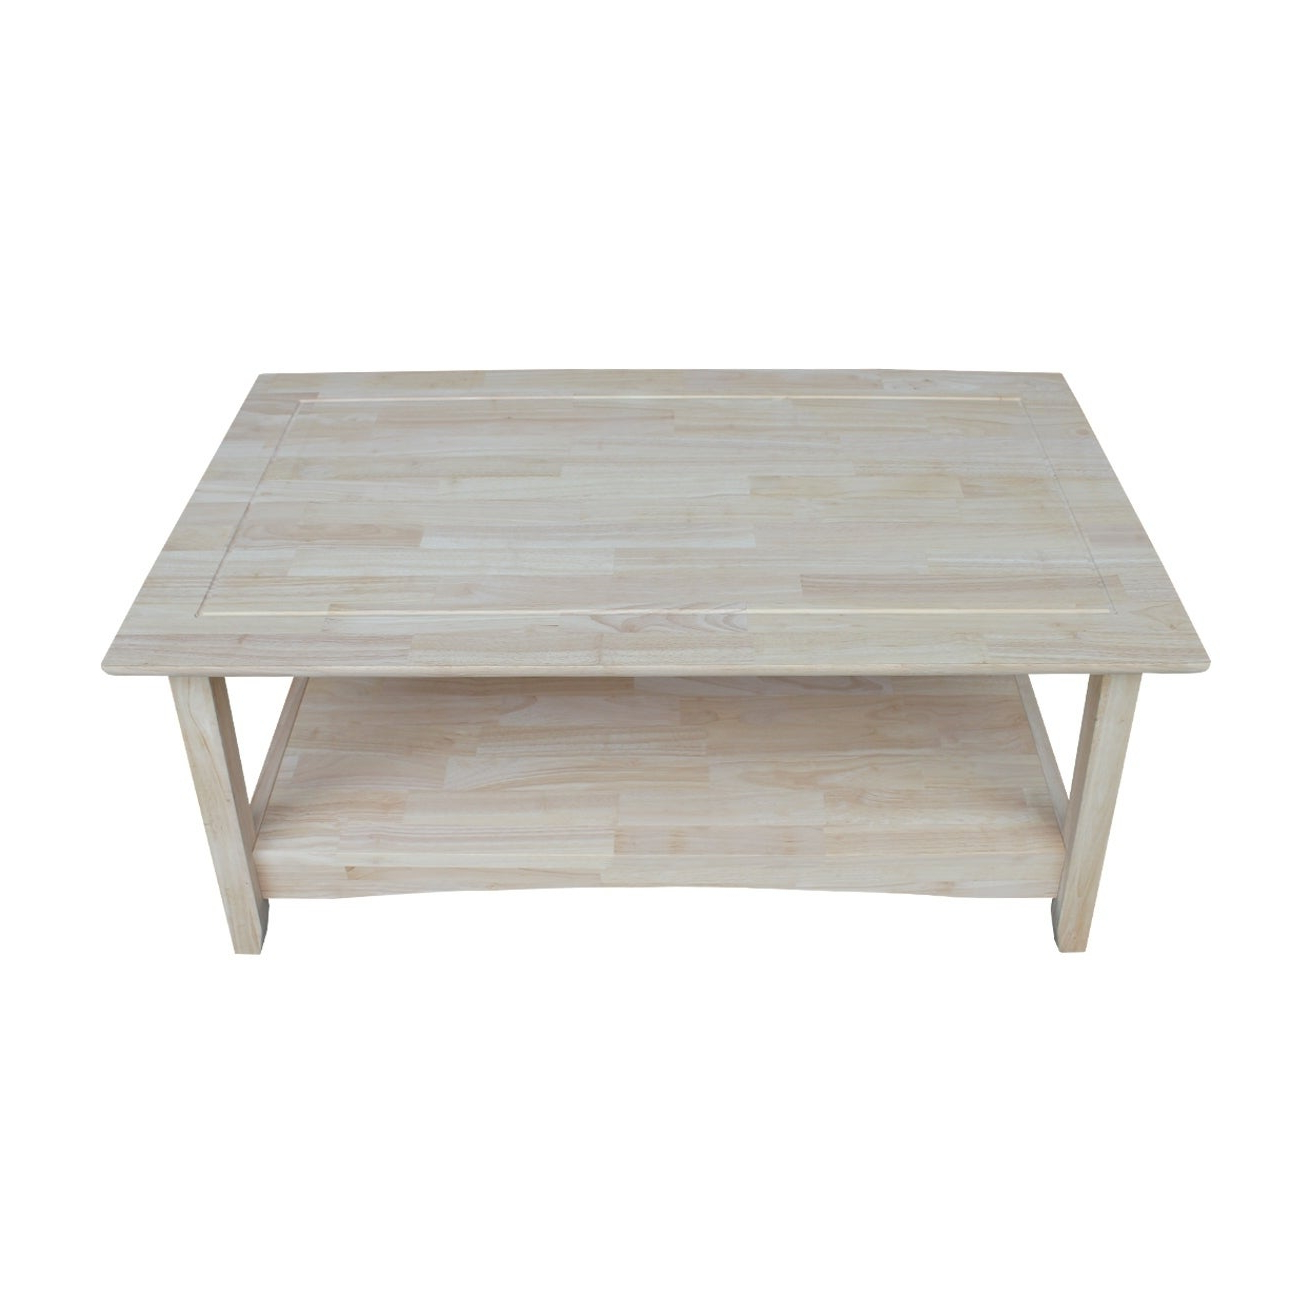 2019 Unfinished Solid Parawood Bombay Tall Lift Top Coffee Tables With Bombay Unfinished Solid Parawood Tall Coffee Table (View 1 of 20)